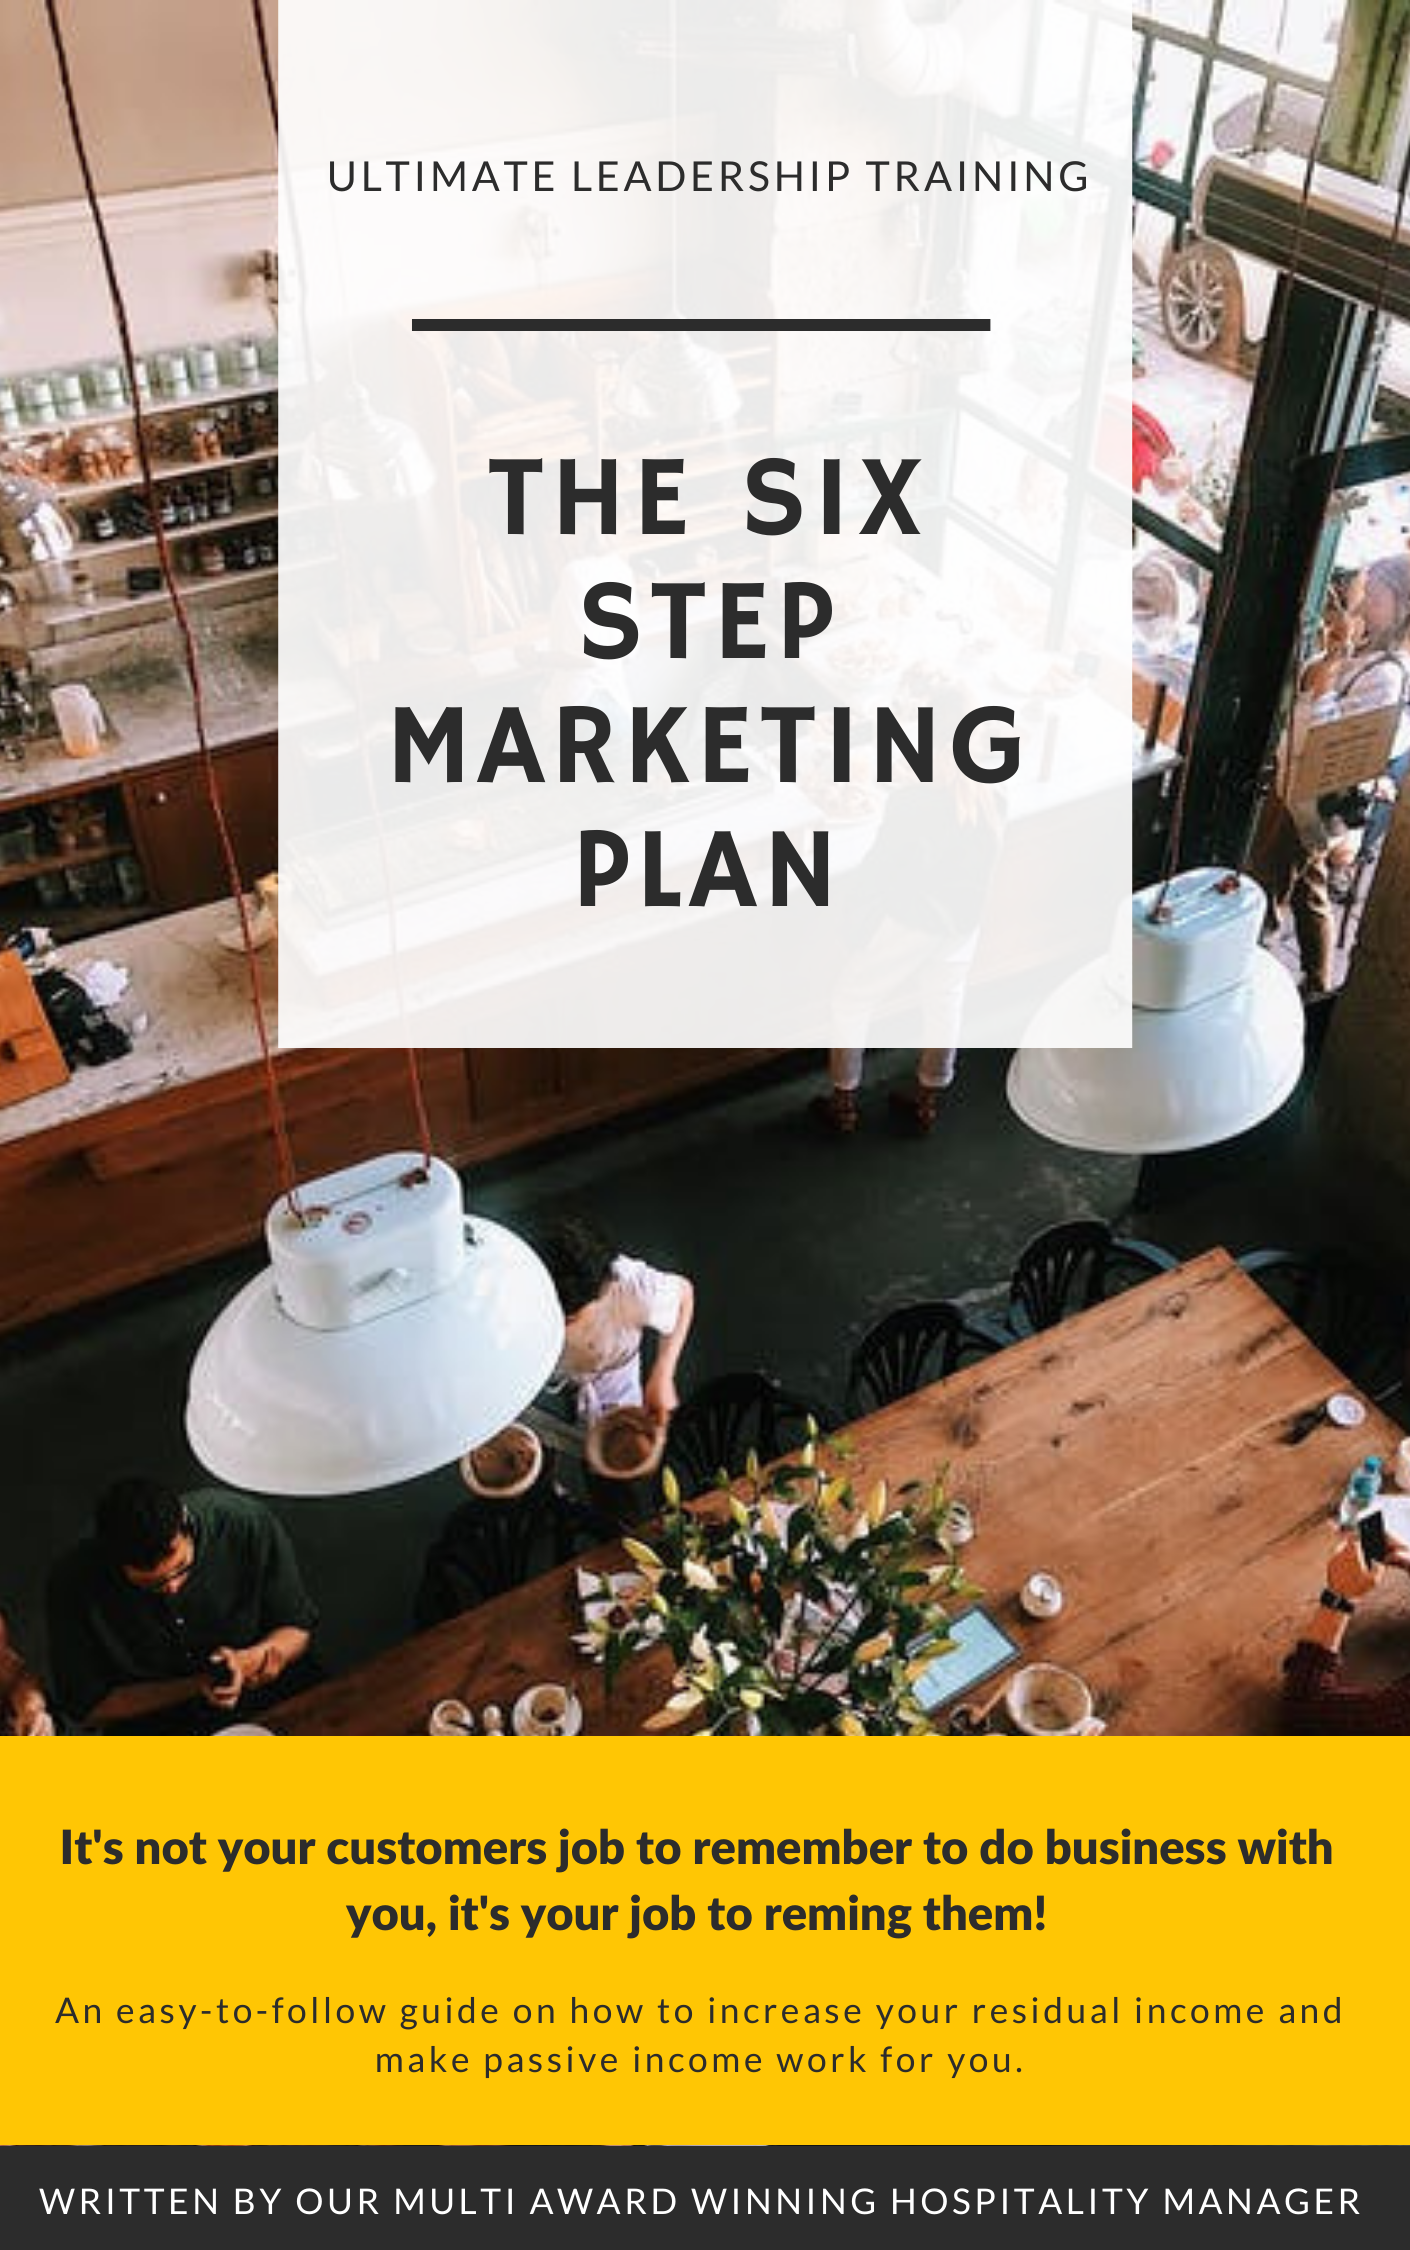 The six step marketing plan for pubs, restaurants and hotels - hospitality marketing